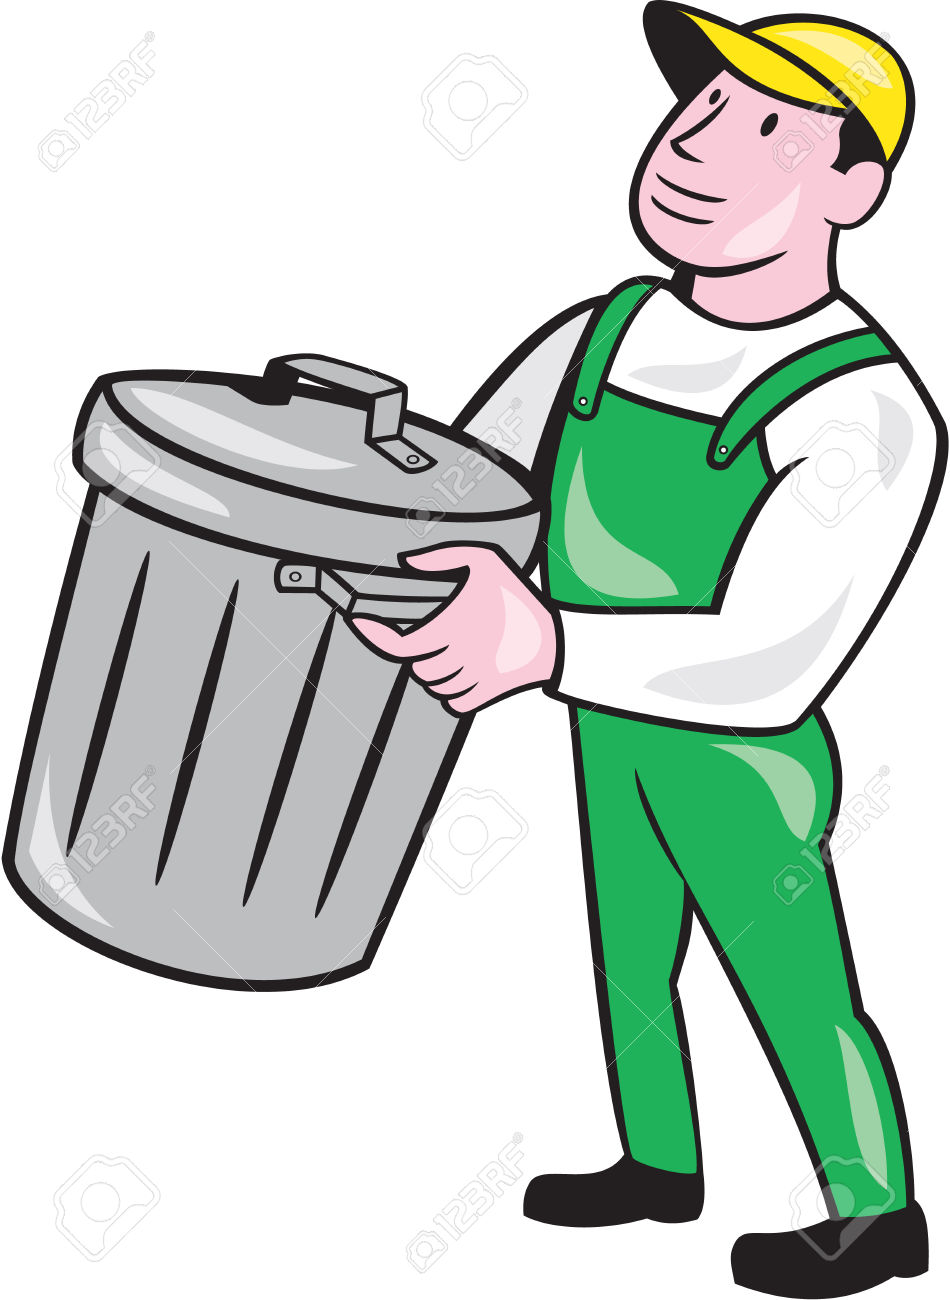 Trash Collector Clipart | Free download best Trash ...  Trash Collector...